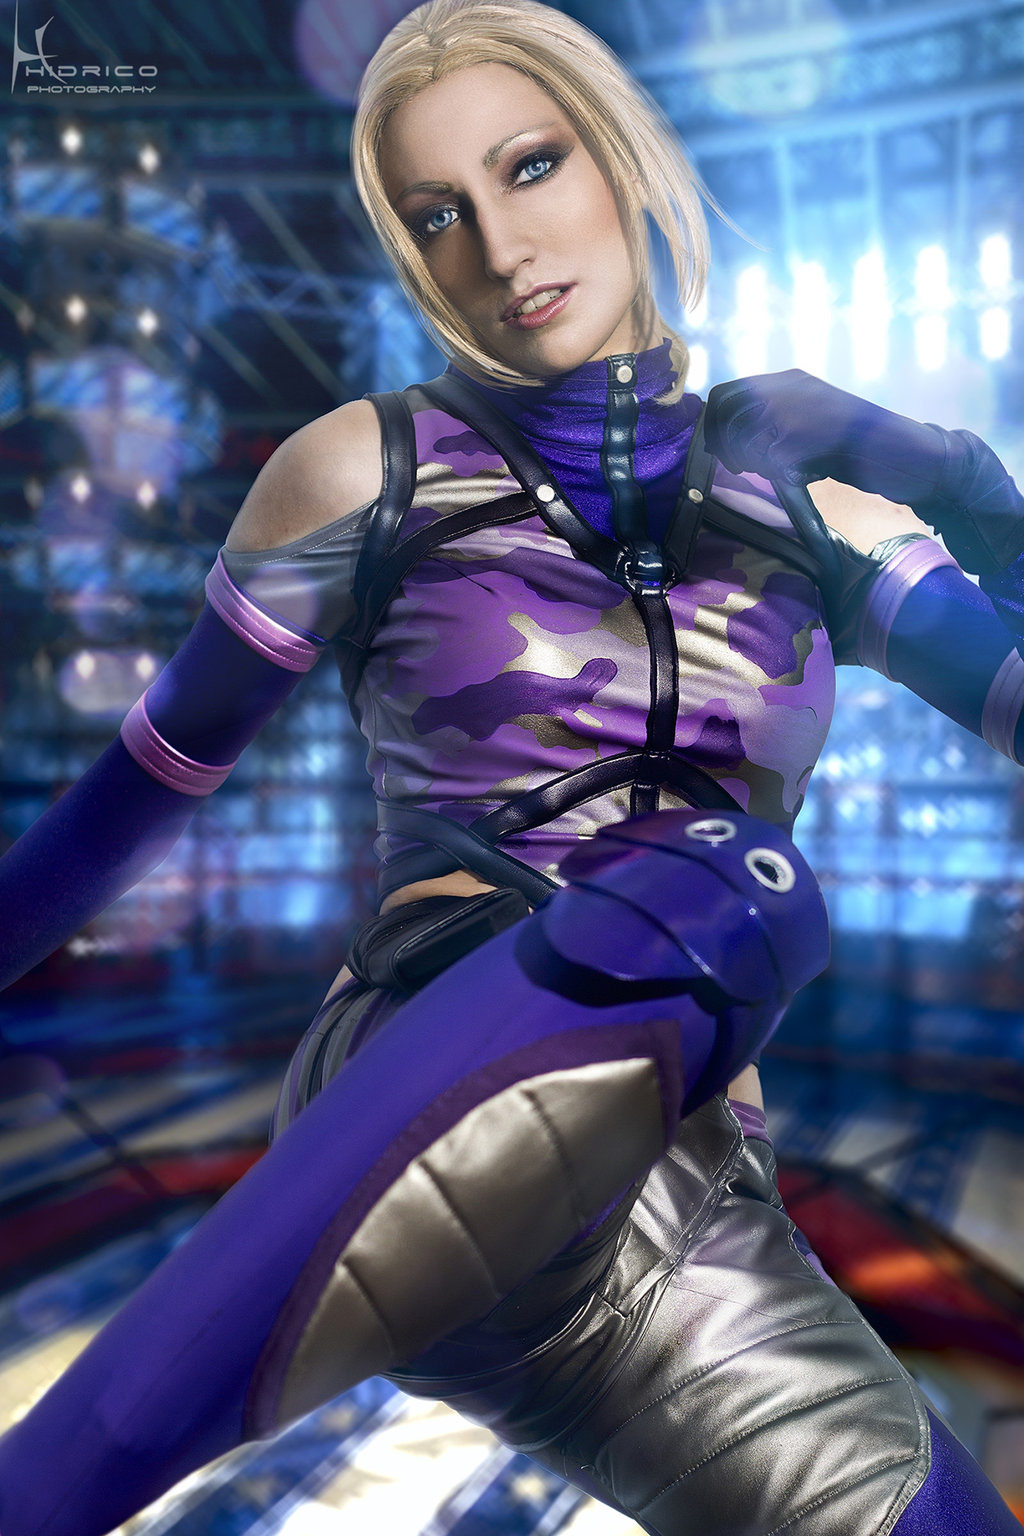 Hidrico's fighting game related cosplay photos #7